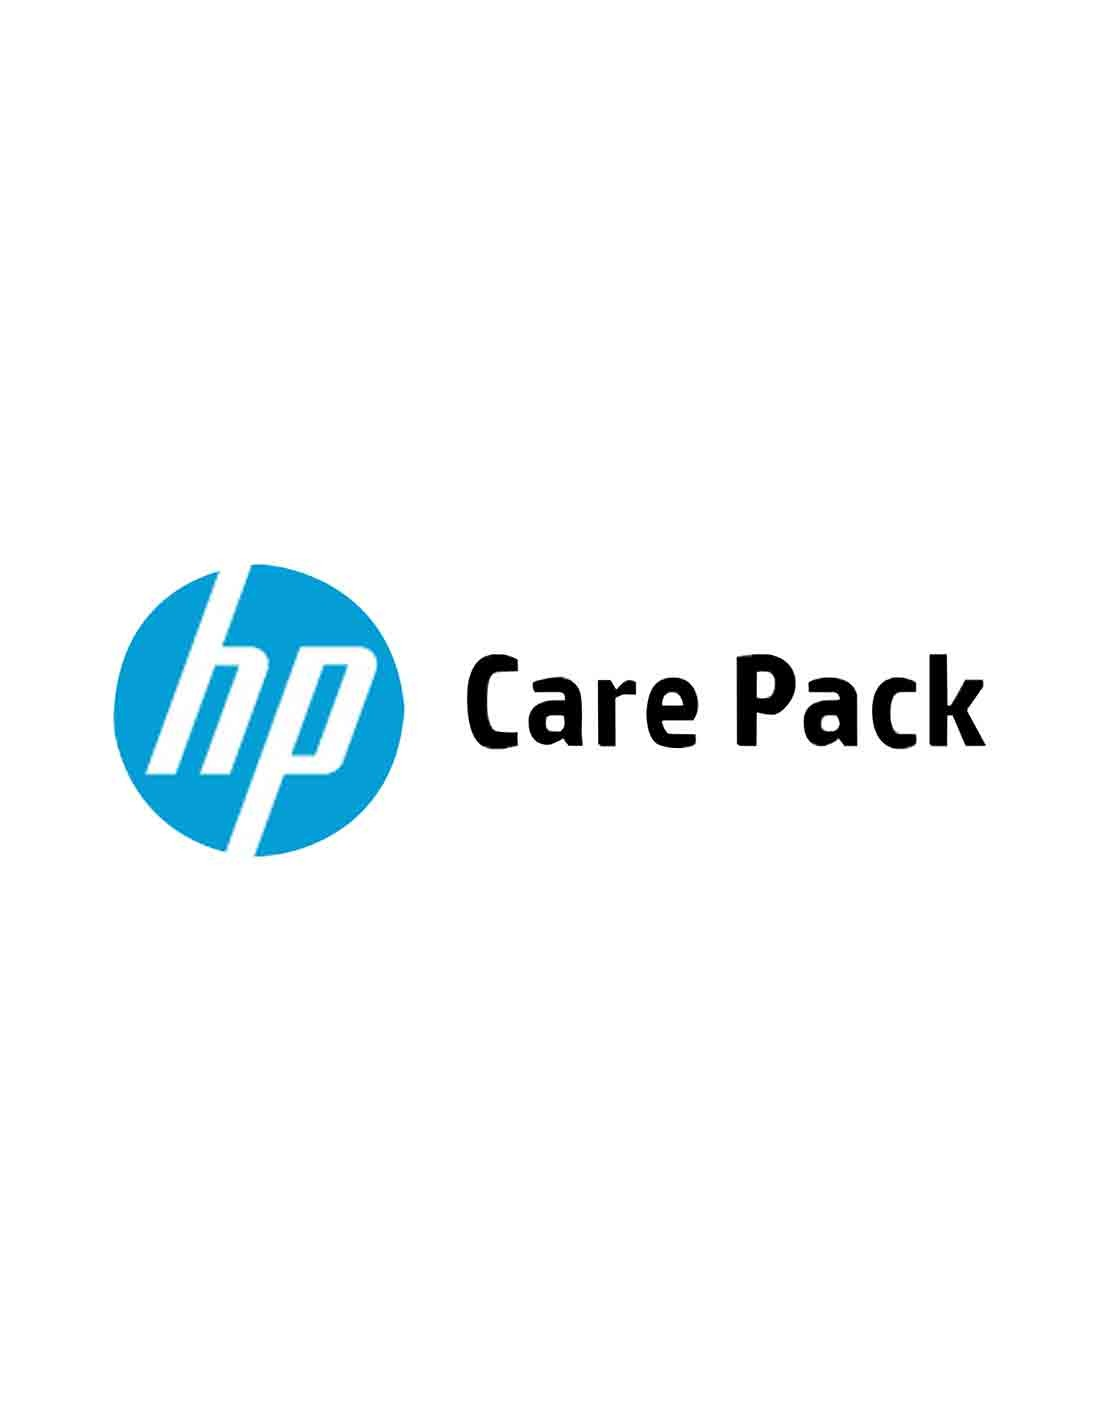 HP 3 Year Return to Depot Service for Consumer Monitors